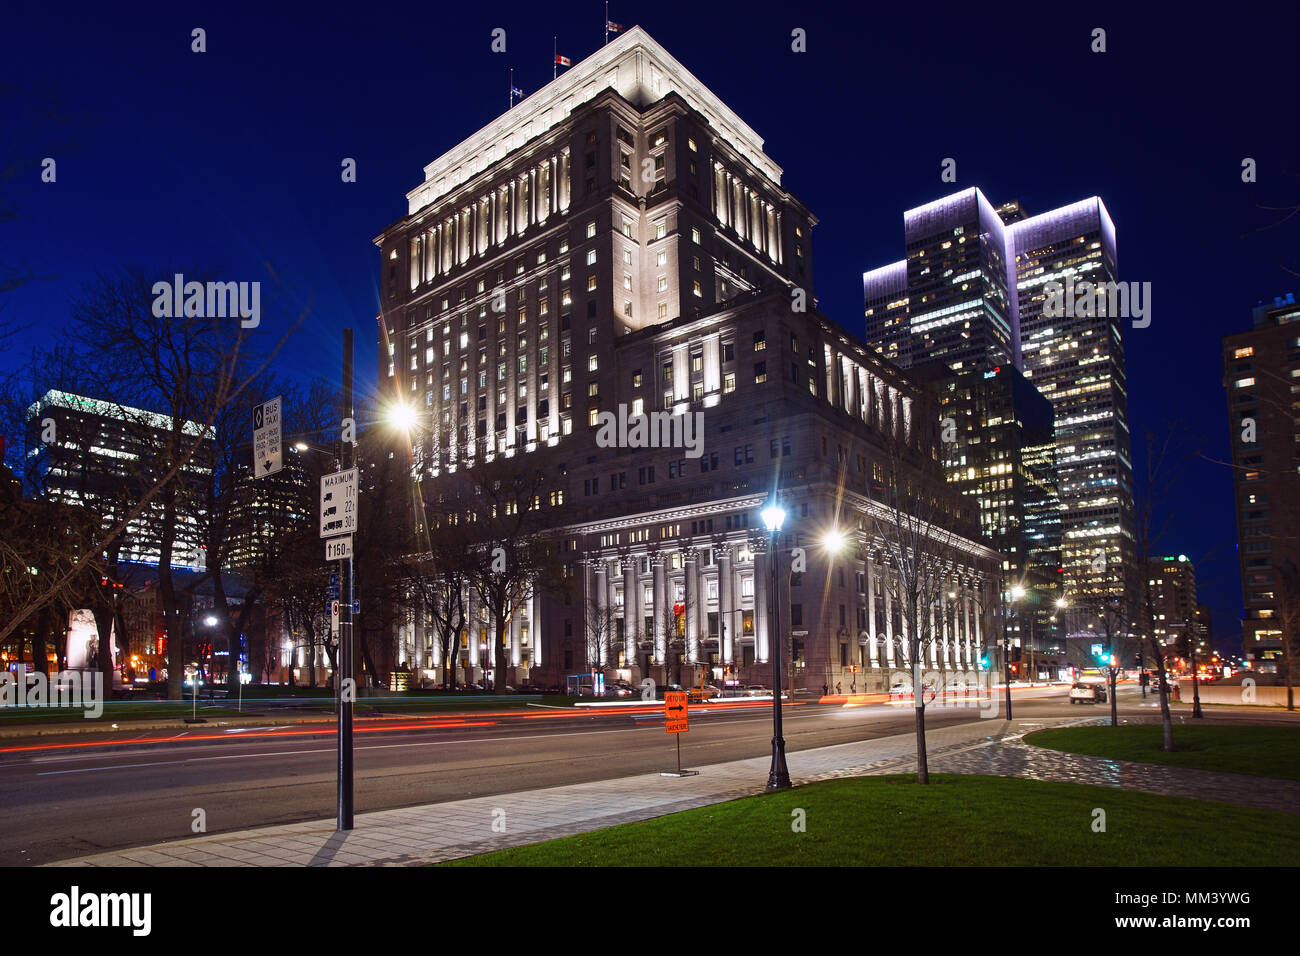 Montreal,Canada,8 May,2018.Sunlife building with the Place Ville Marie tower in the background at night.Credit:Mario Beauregard/Alamy Live News. Stock Photo